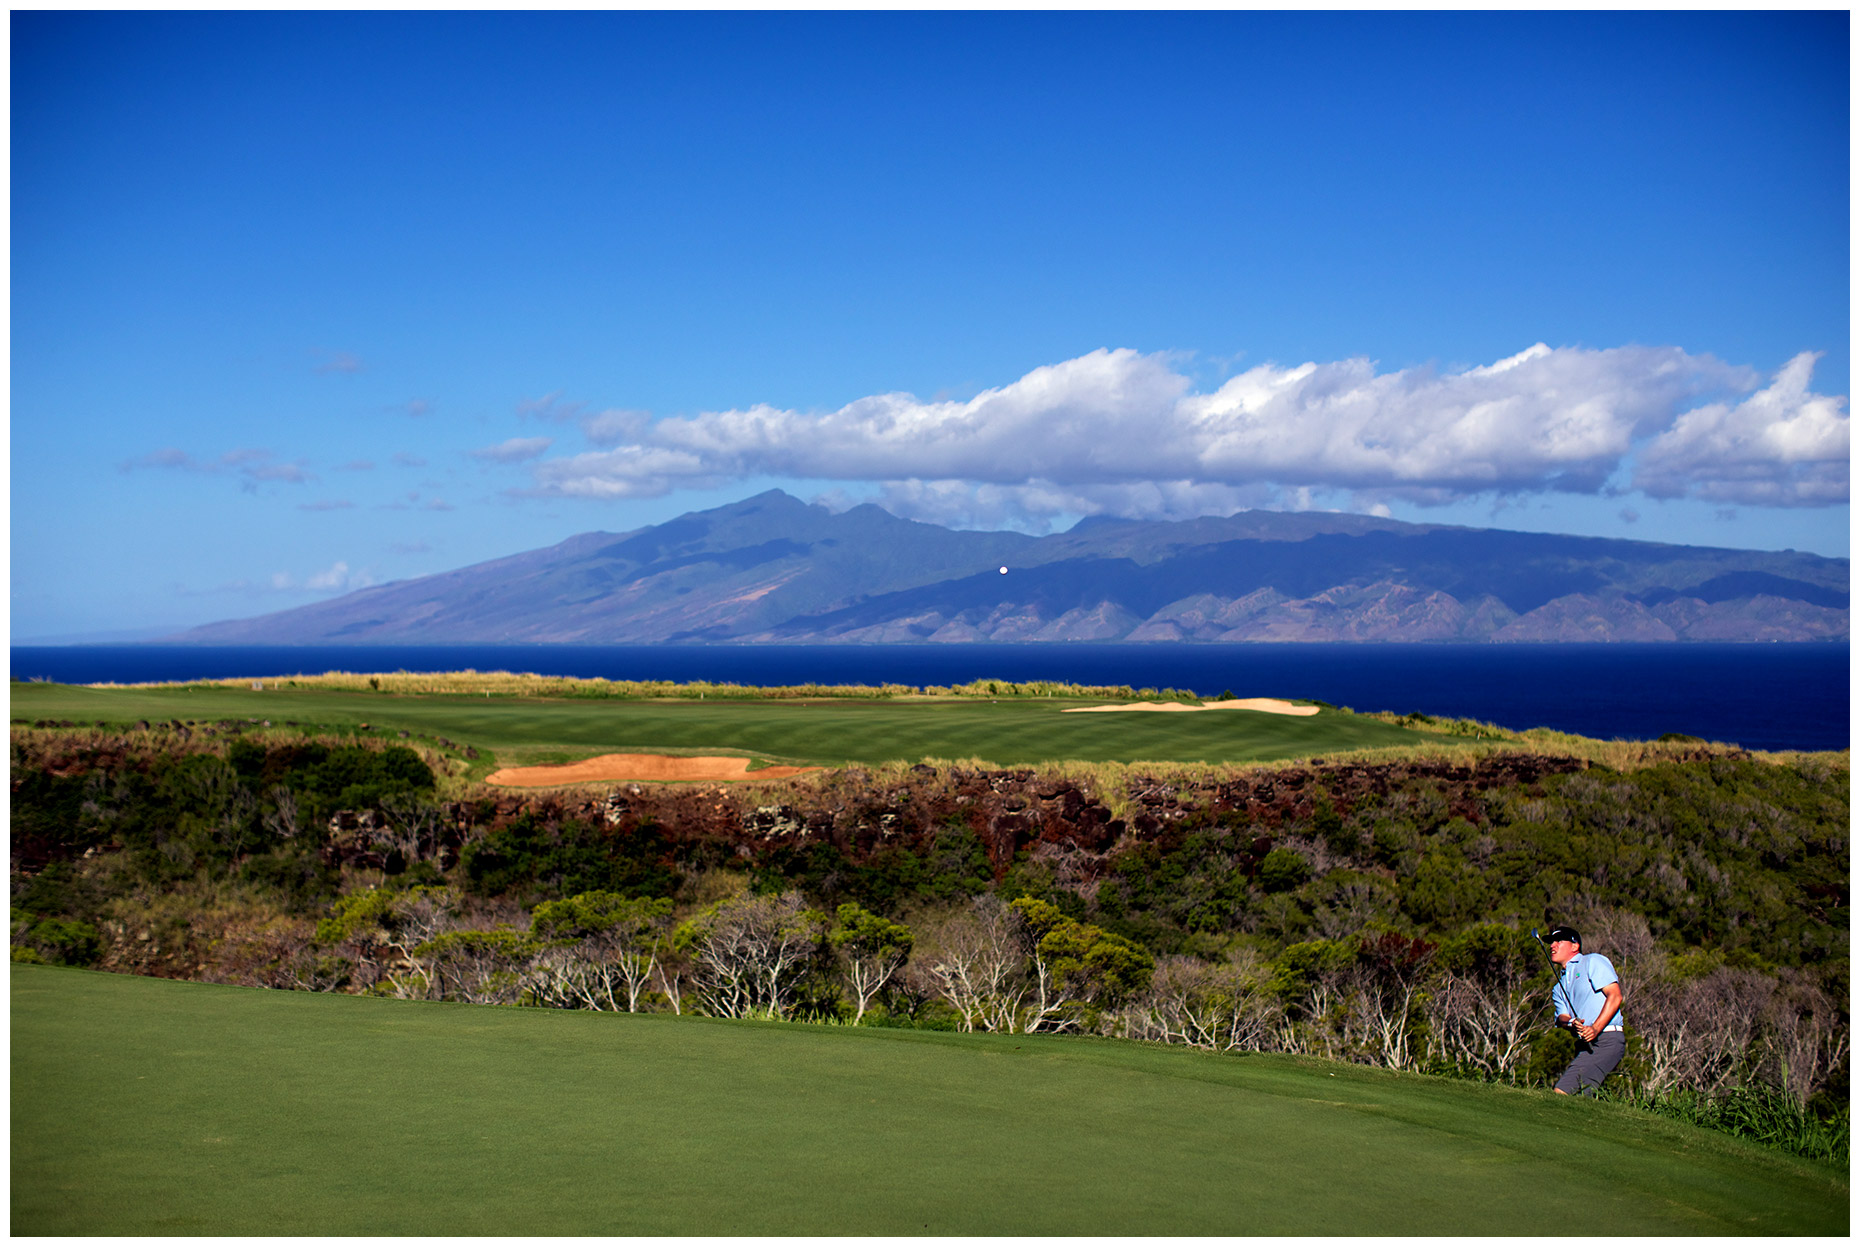 Mercedes-Benz Dealer Sectional play at the Plantation Course in Kapalua.